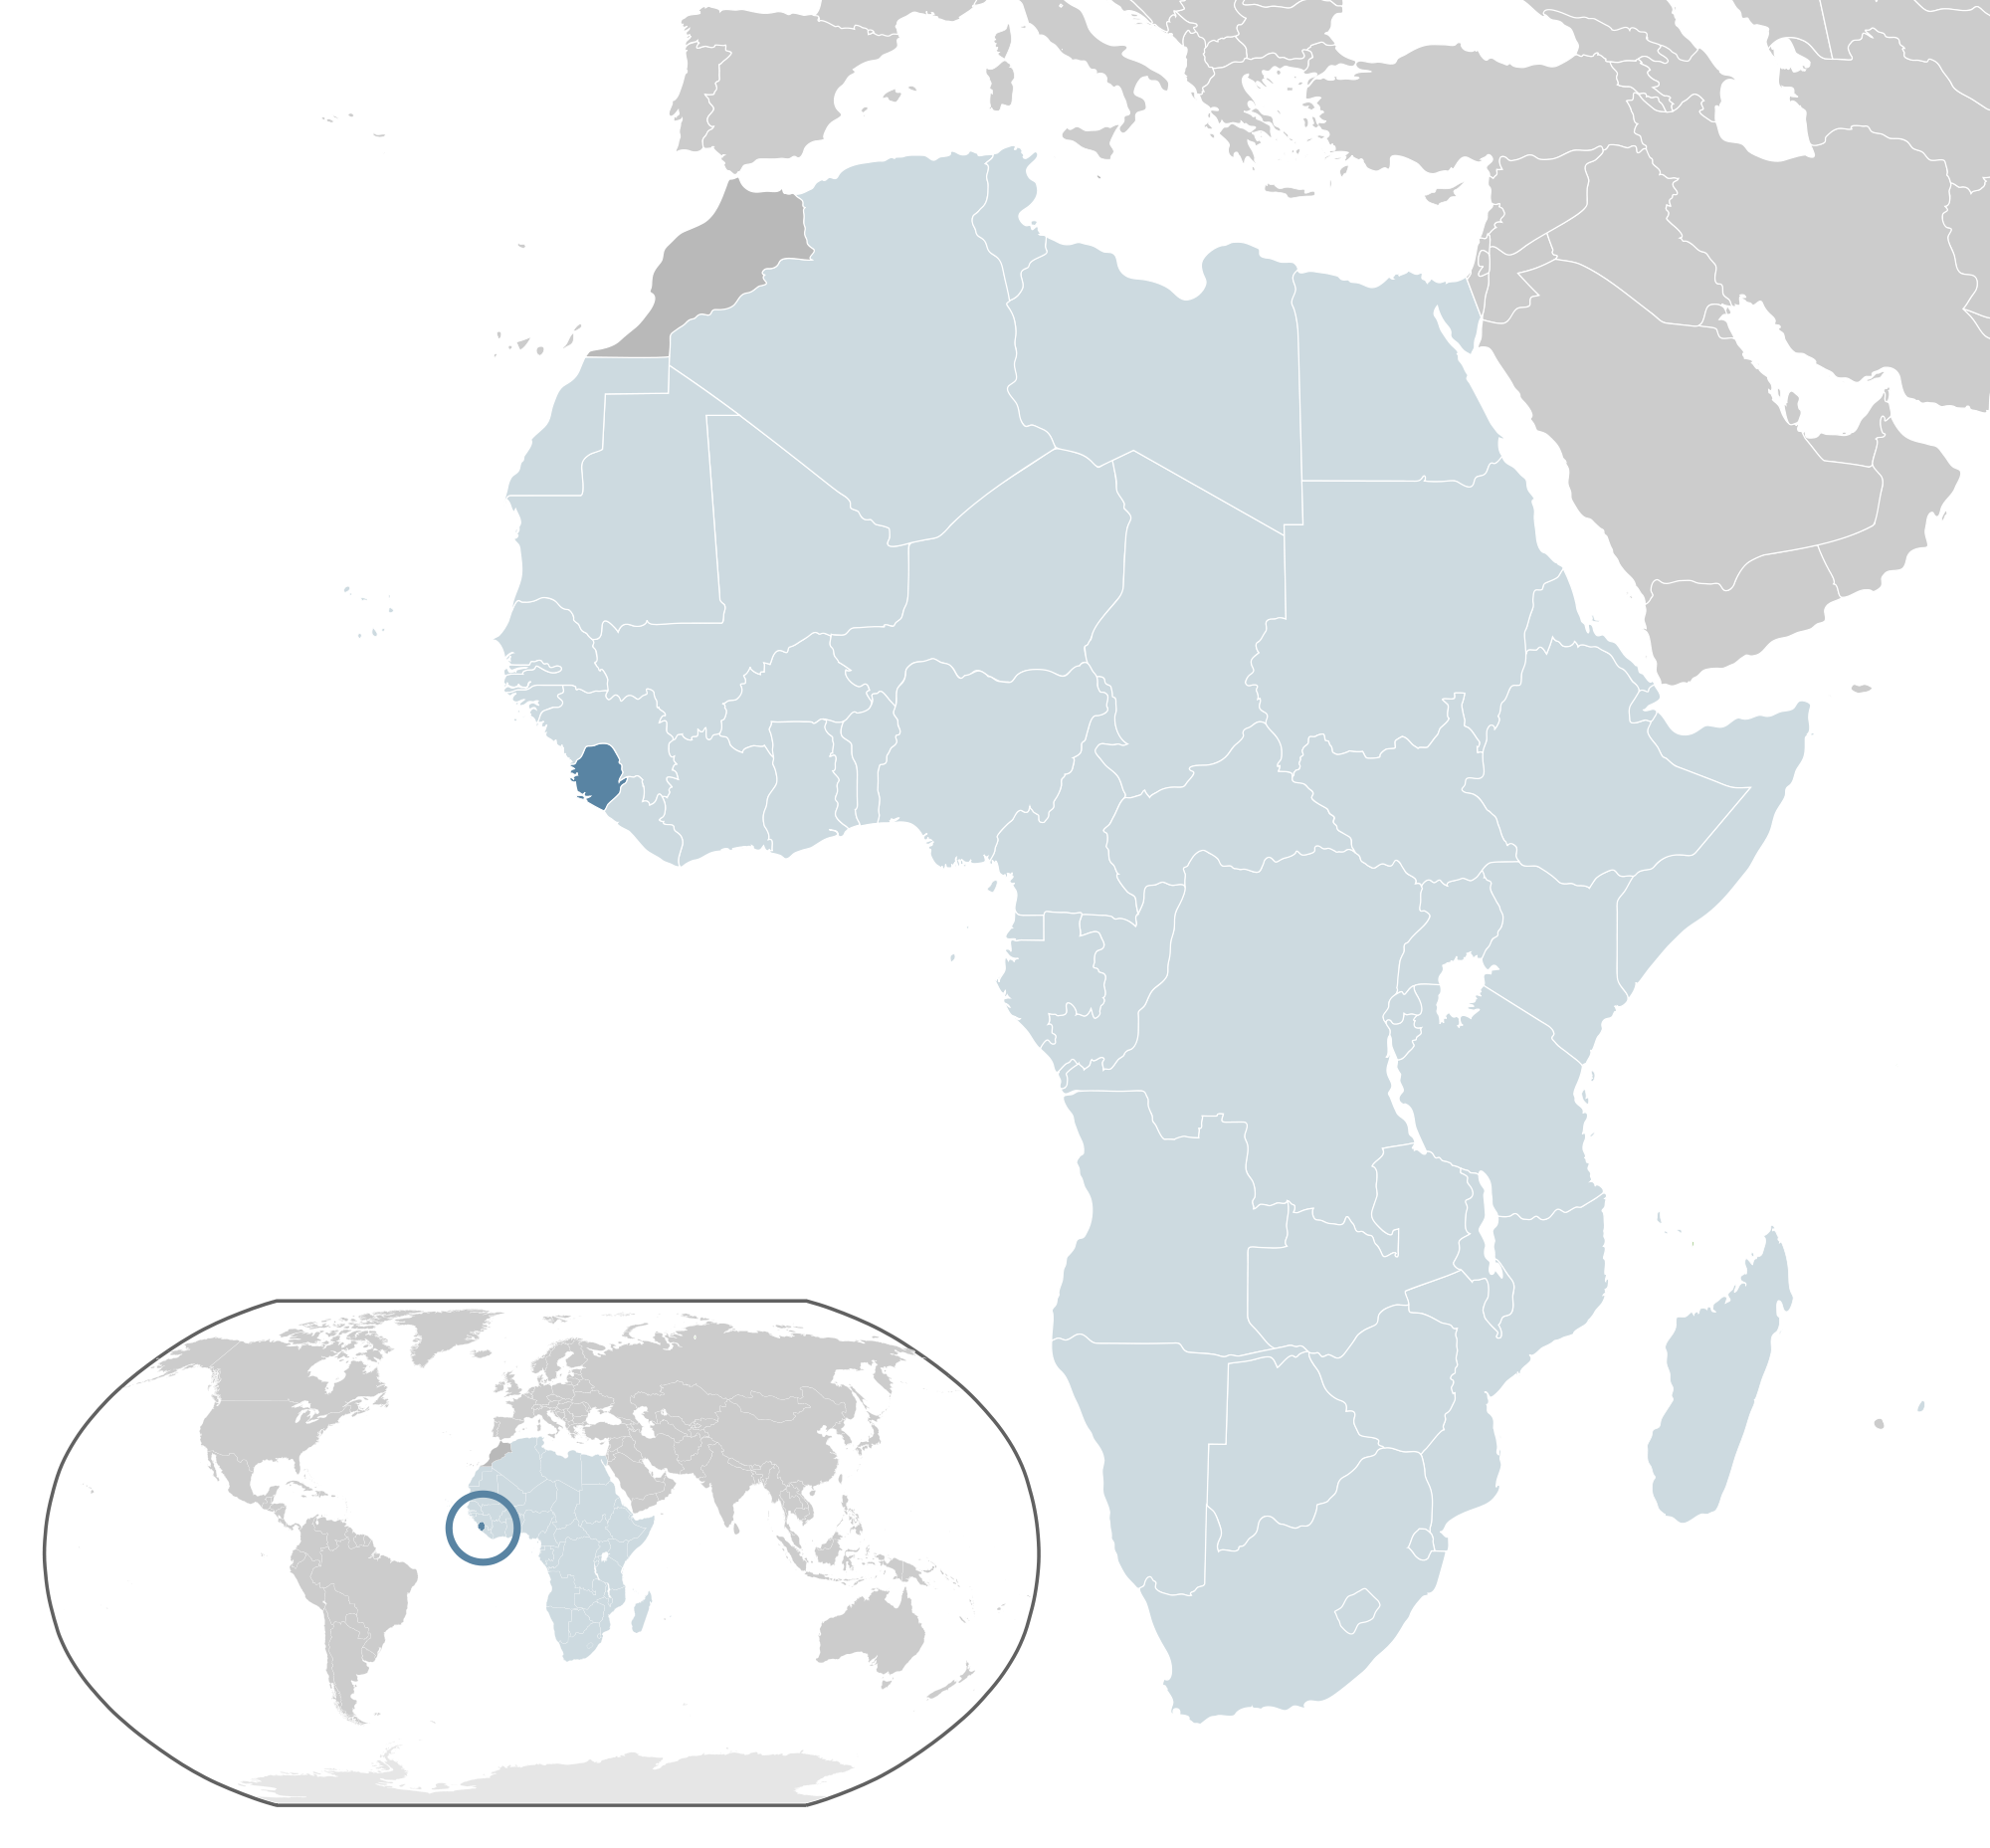 Location of the Sierra Leone in the World Map